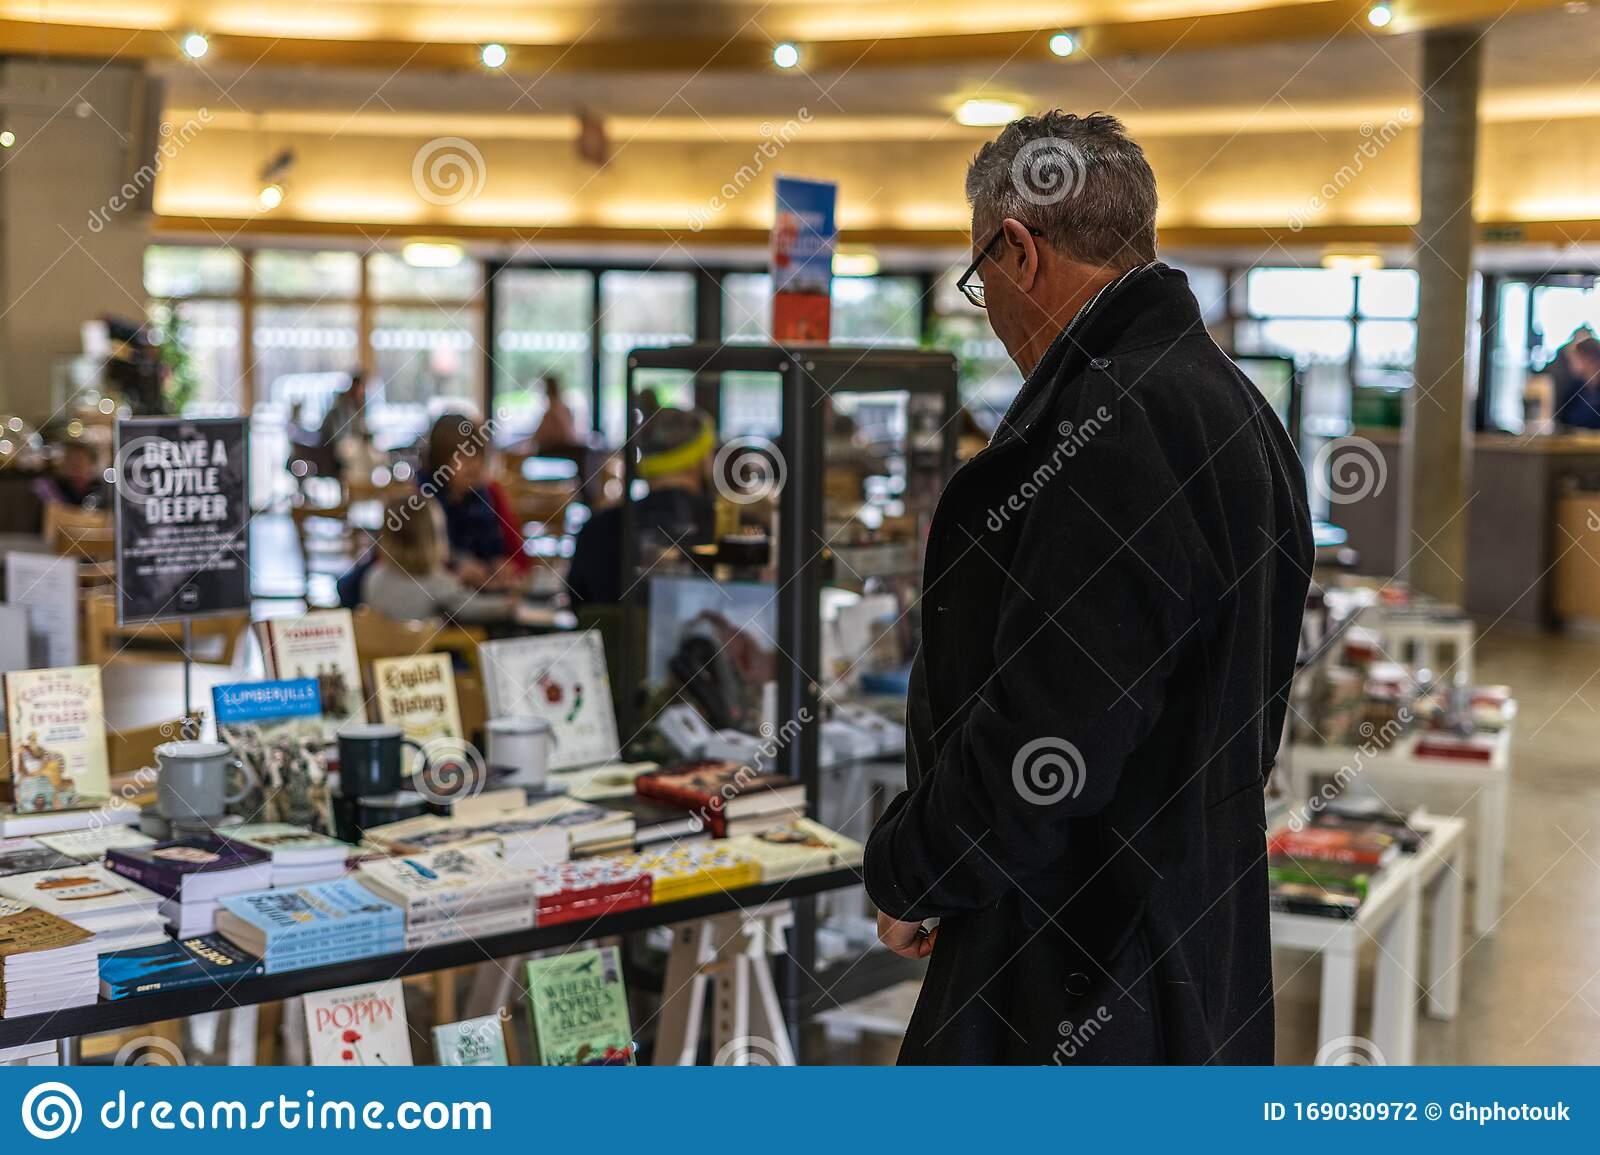 A Middle Aged Man Looking At Items In A Gift Shop Of A Museum Editorial Photography Image Of Stall Shop 169030972